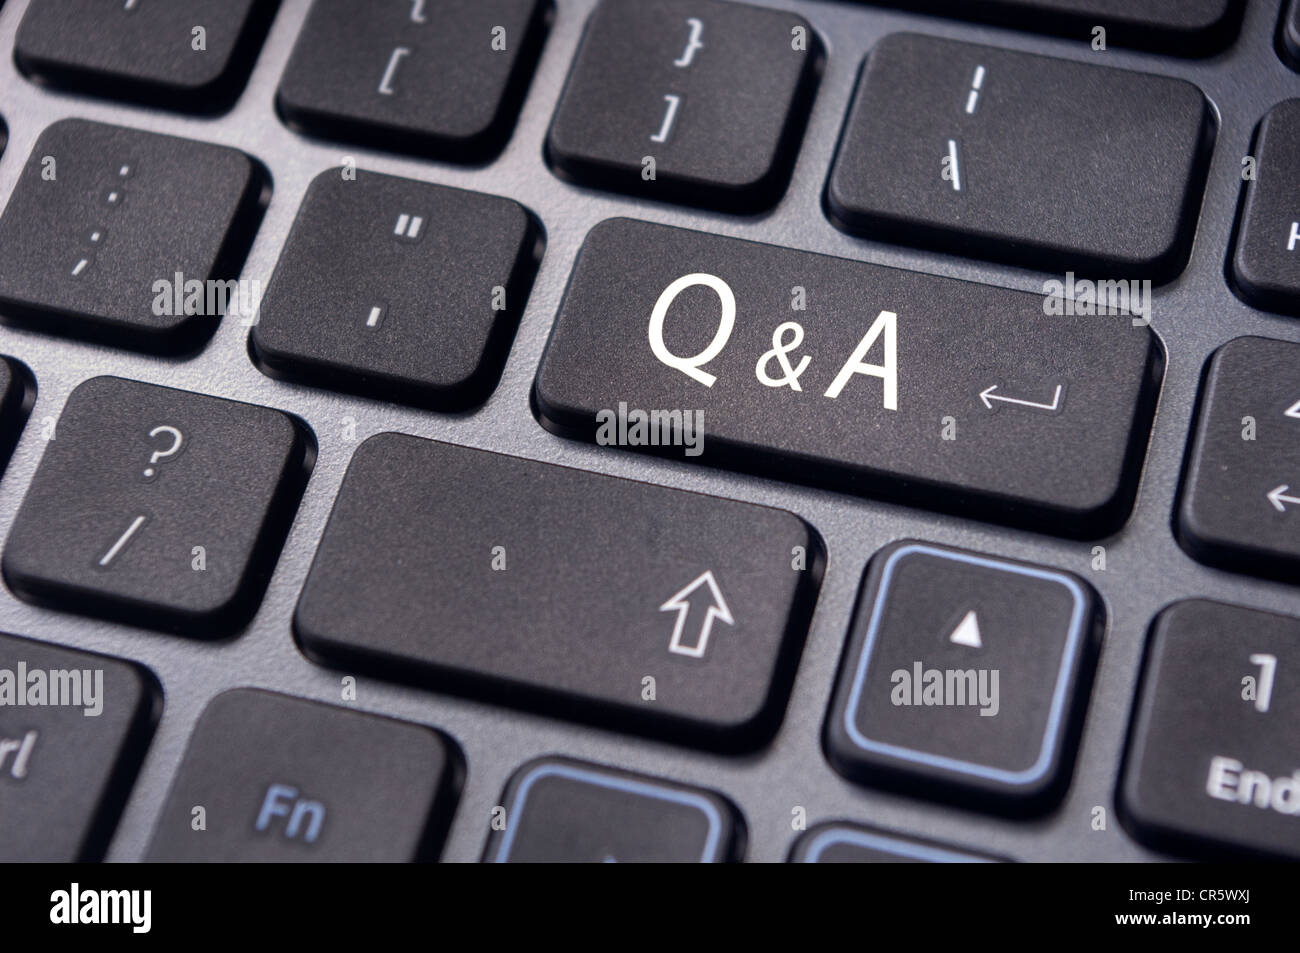 Q&A on enter key of keyboard, for conceptual usage. - Stock Image